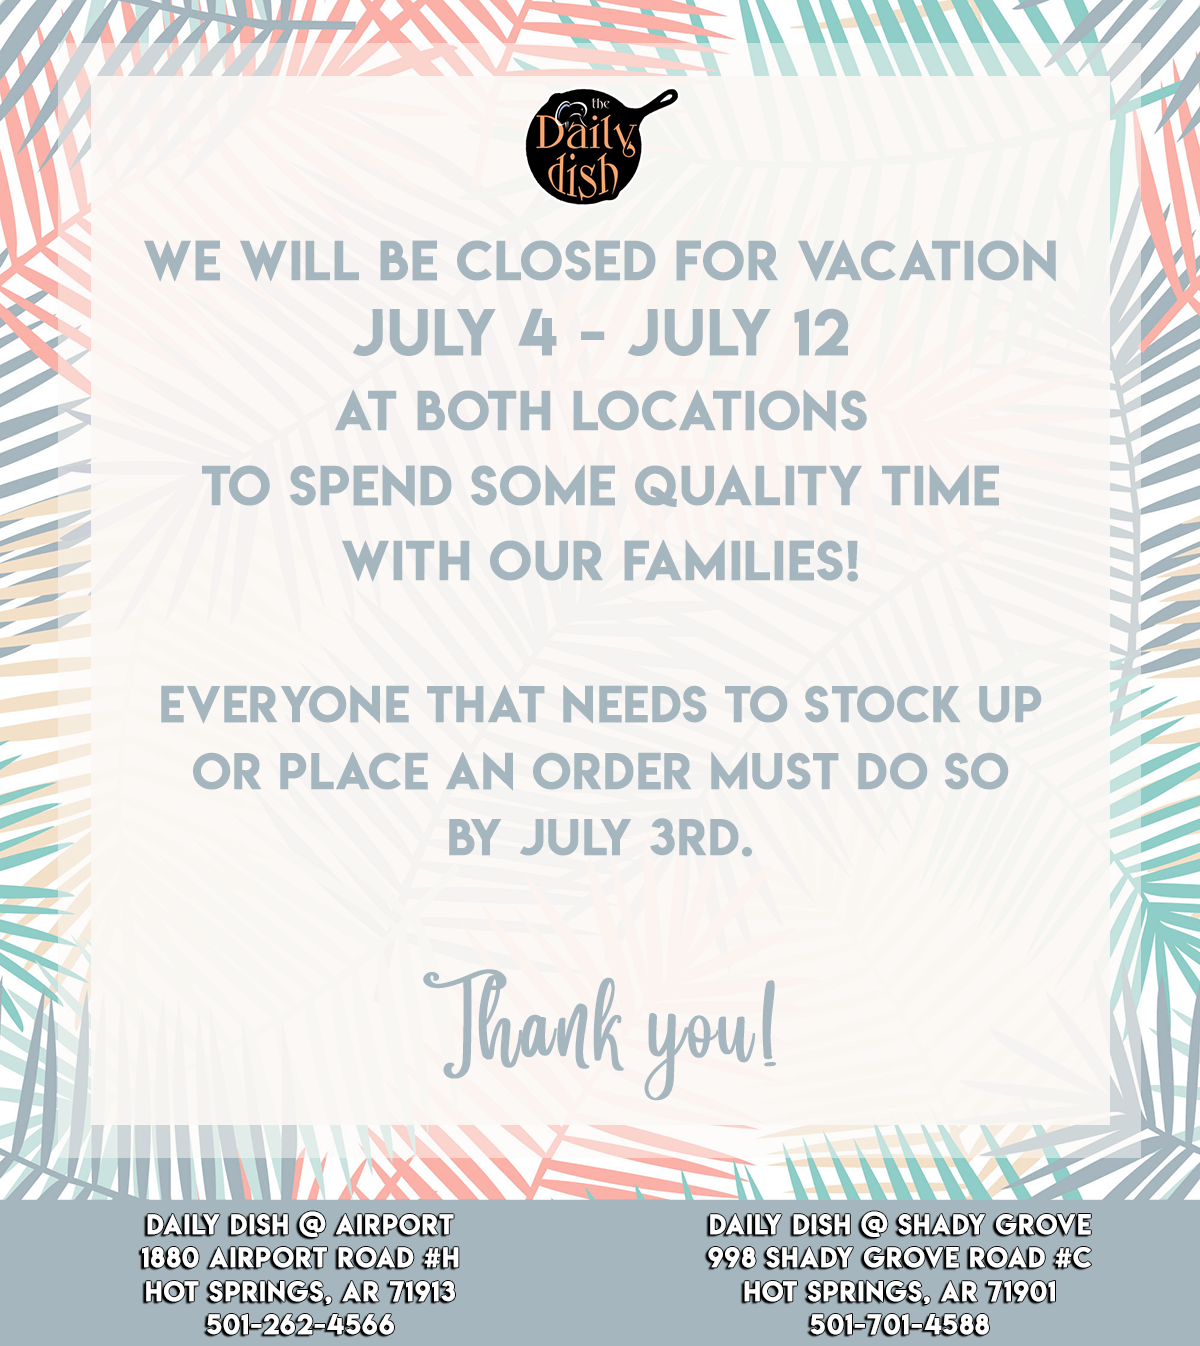 We will be closed for vacation from July 4th to July 12th at both locations to spend some quality time with our families. Everyone that needs to stock up or place an order must do so by July 3rd. Thank you!